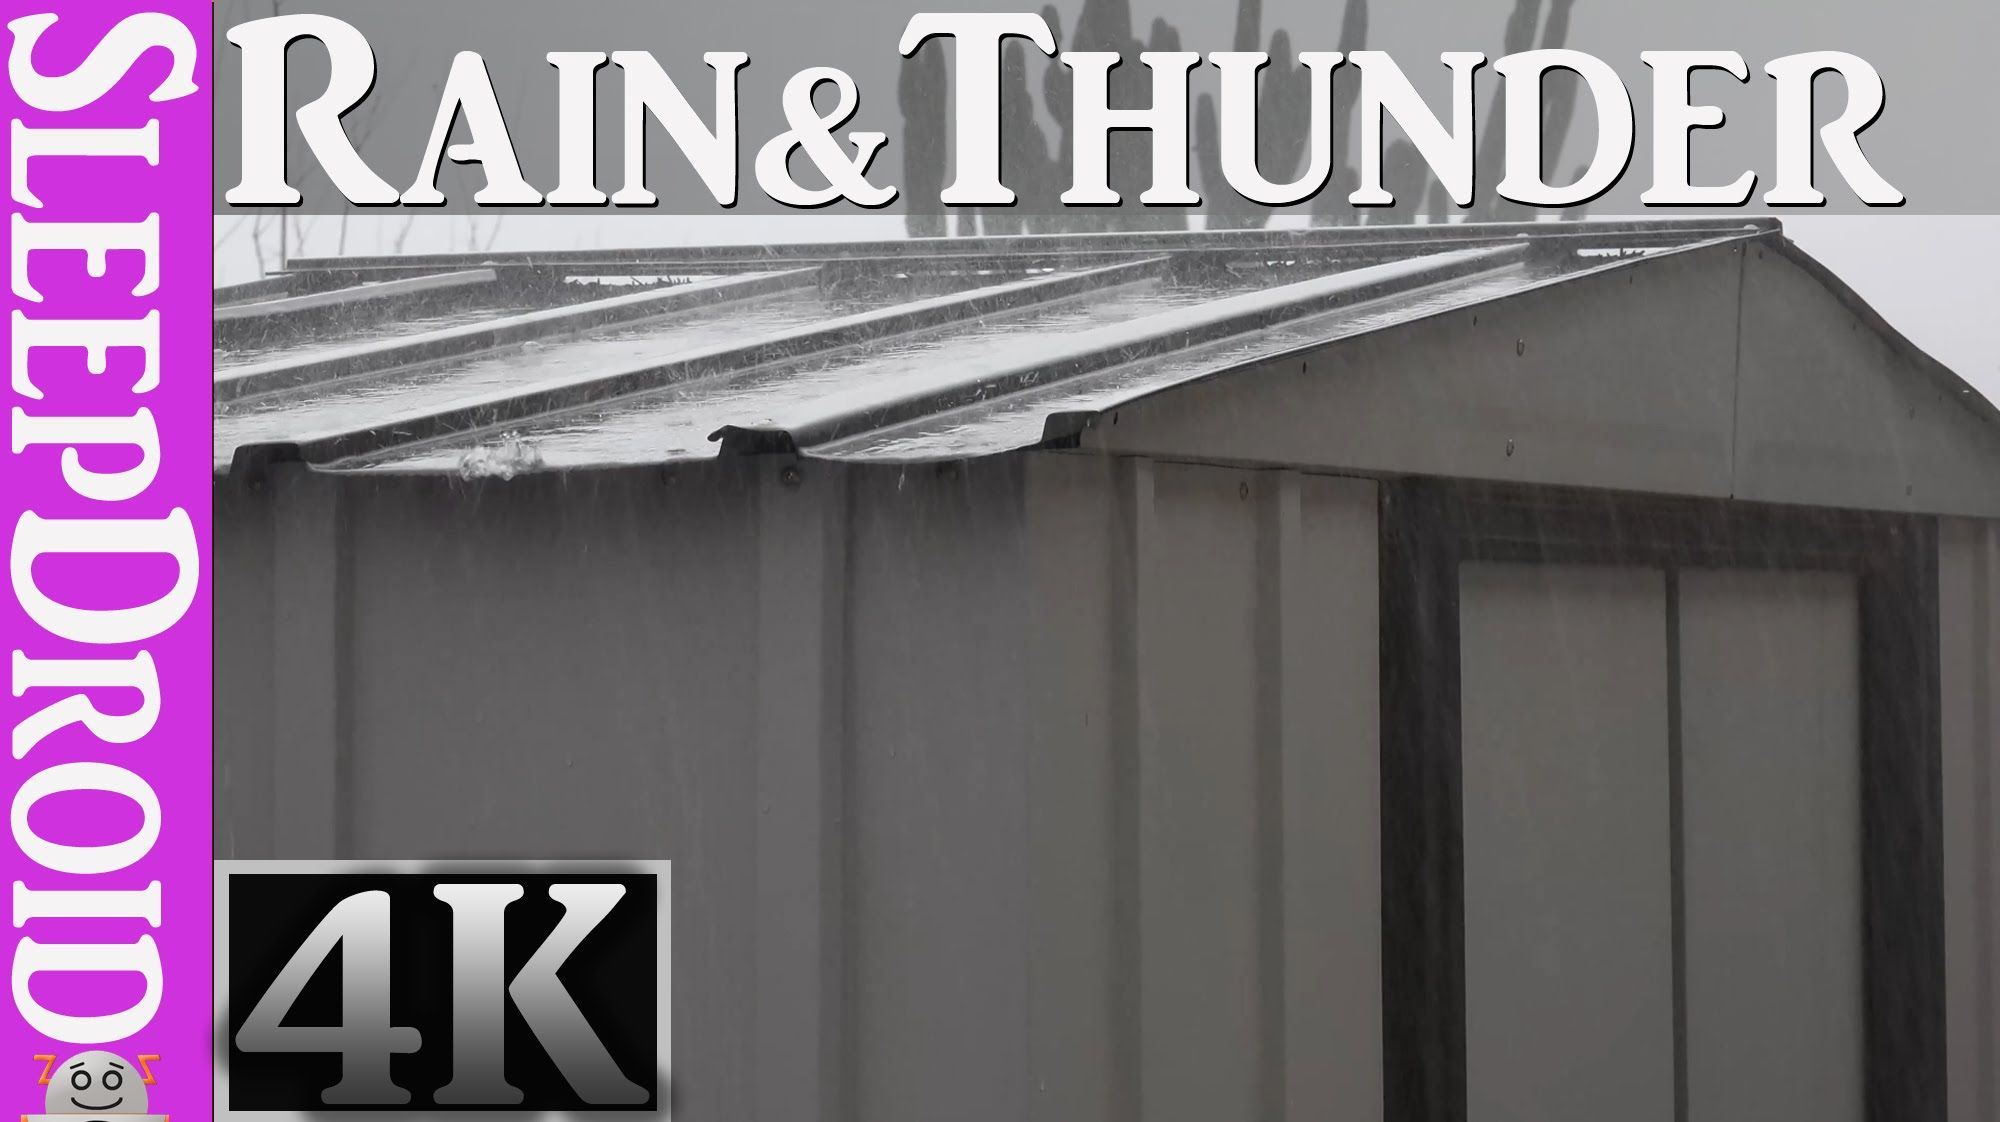 4k Video 2 Hours Of Heavy Rain And Thunder On A Metal Roof Storage She Rain And Thunder Roof Storage Storage Shed